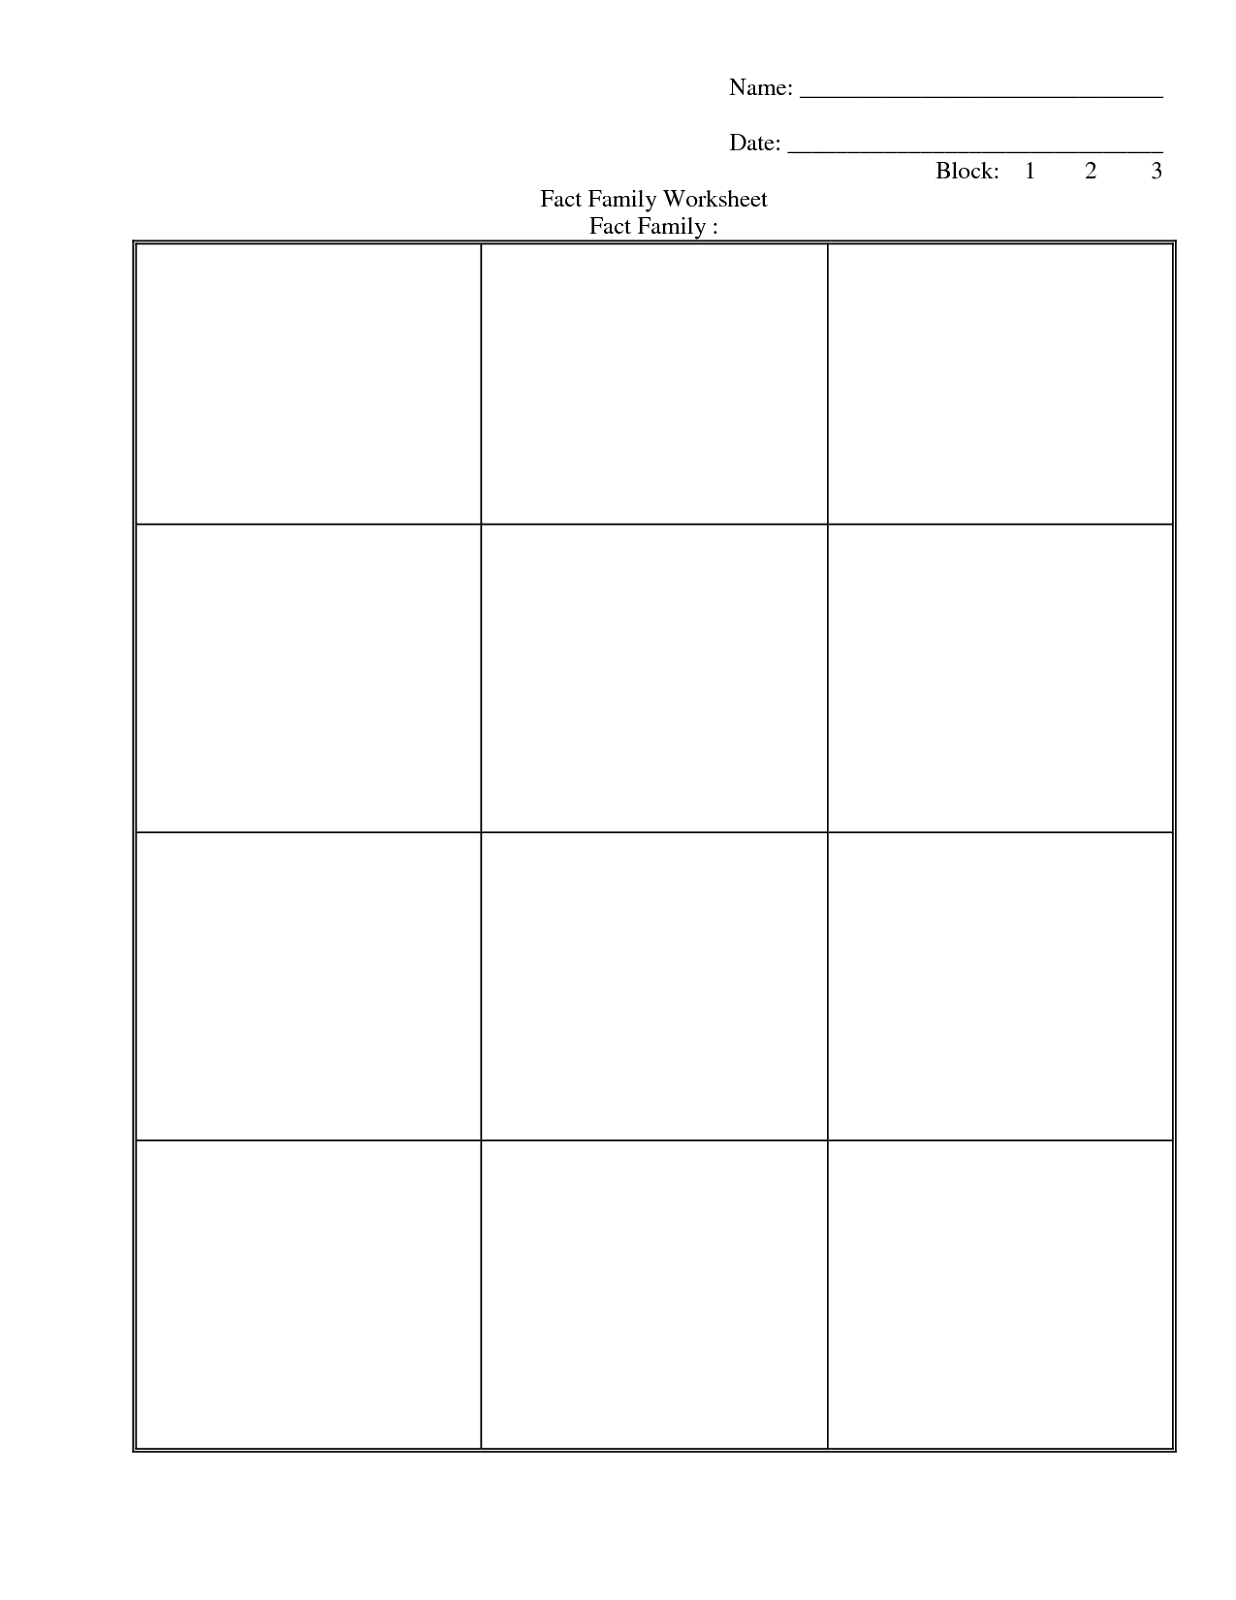 Family Facts Worksheets